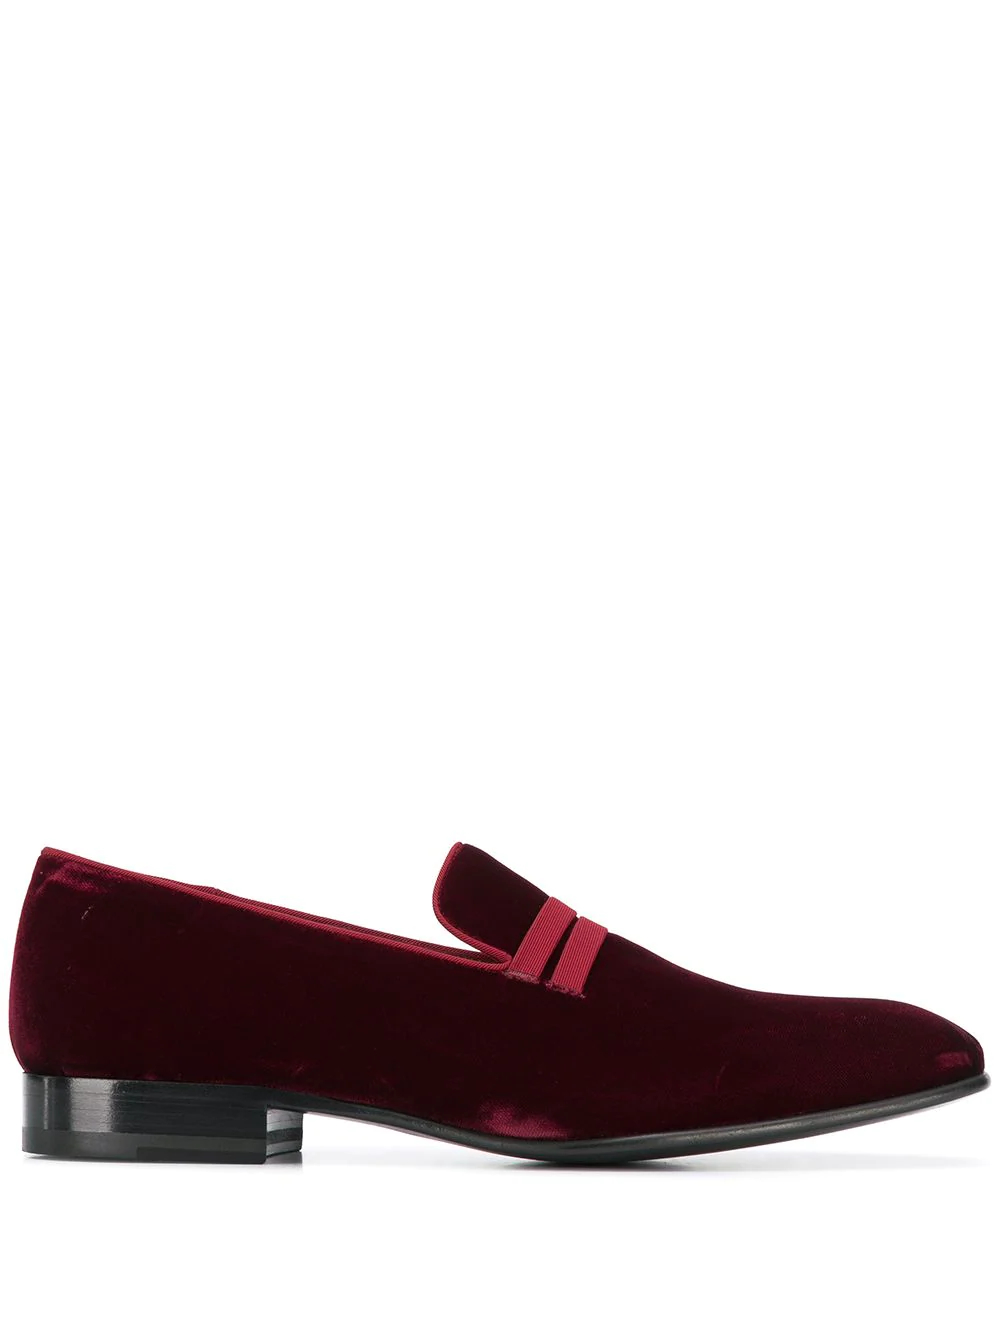 Malone Souliers | Malone Souliers бархатные лоферы | Clouty